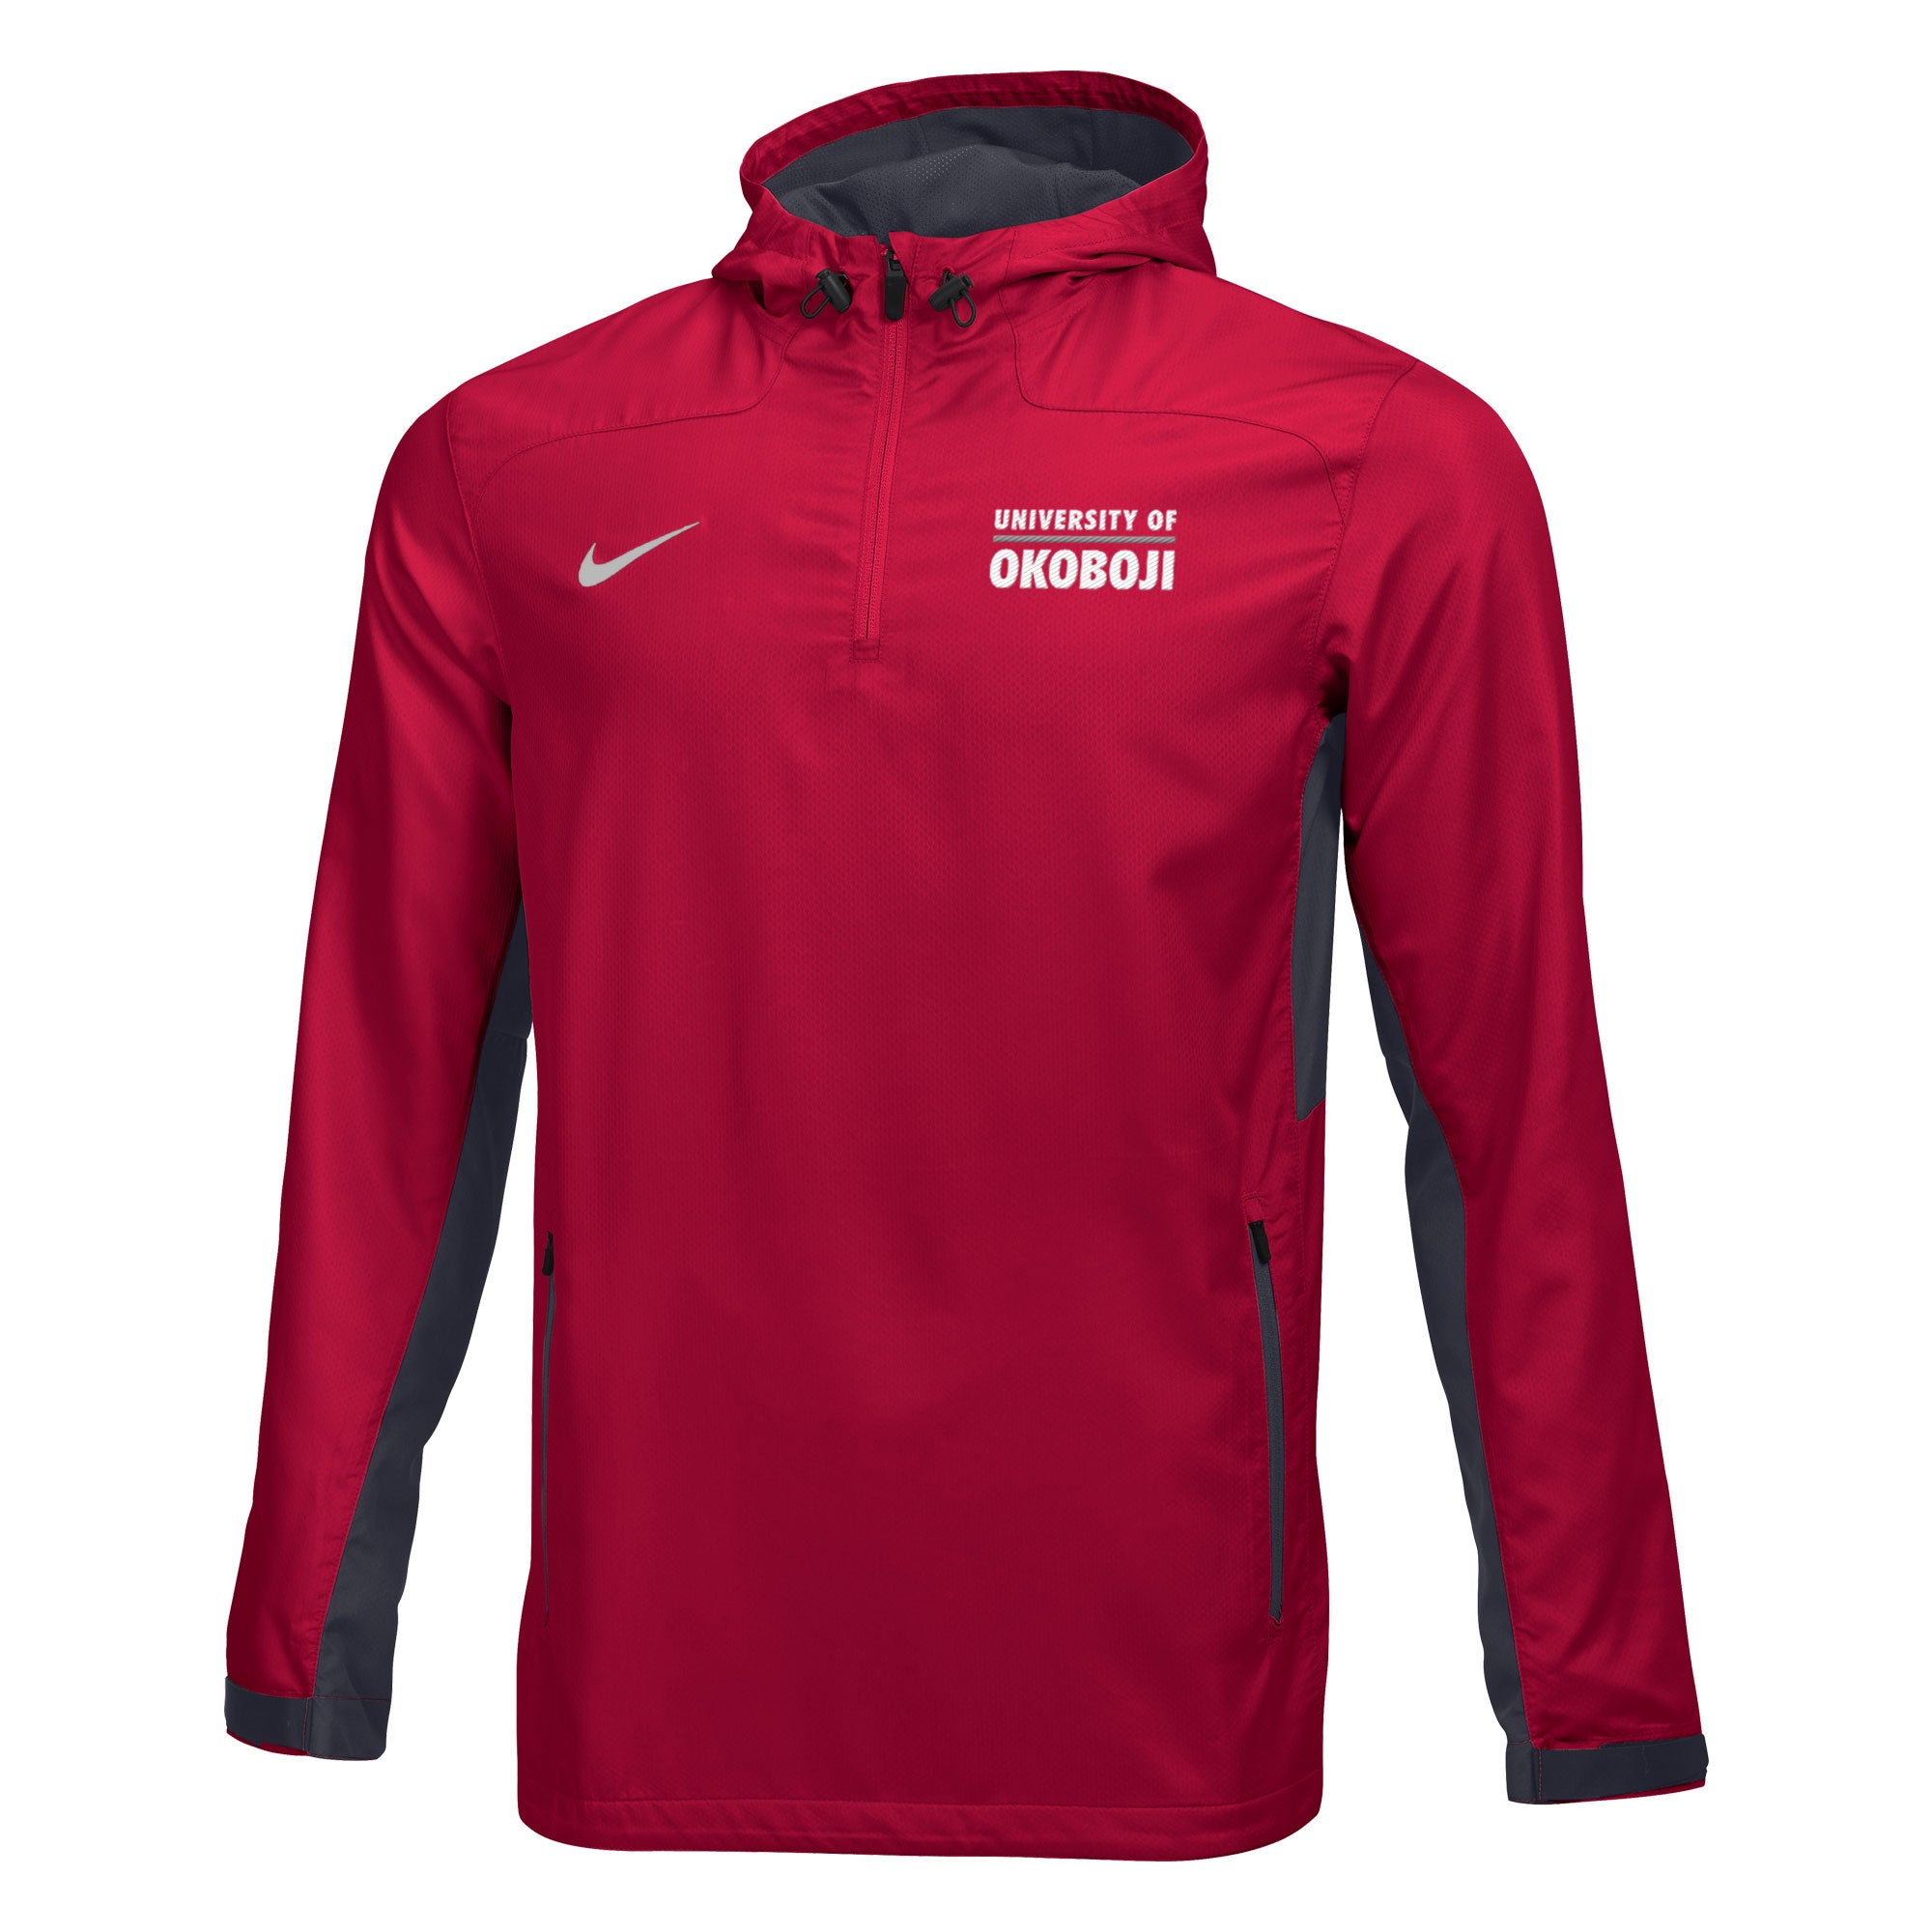 Men's Nike Woven 1/4 Zip Jacket - Red